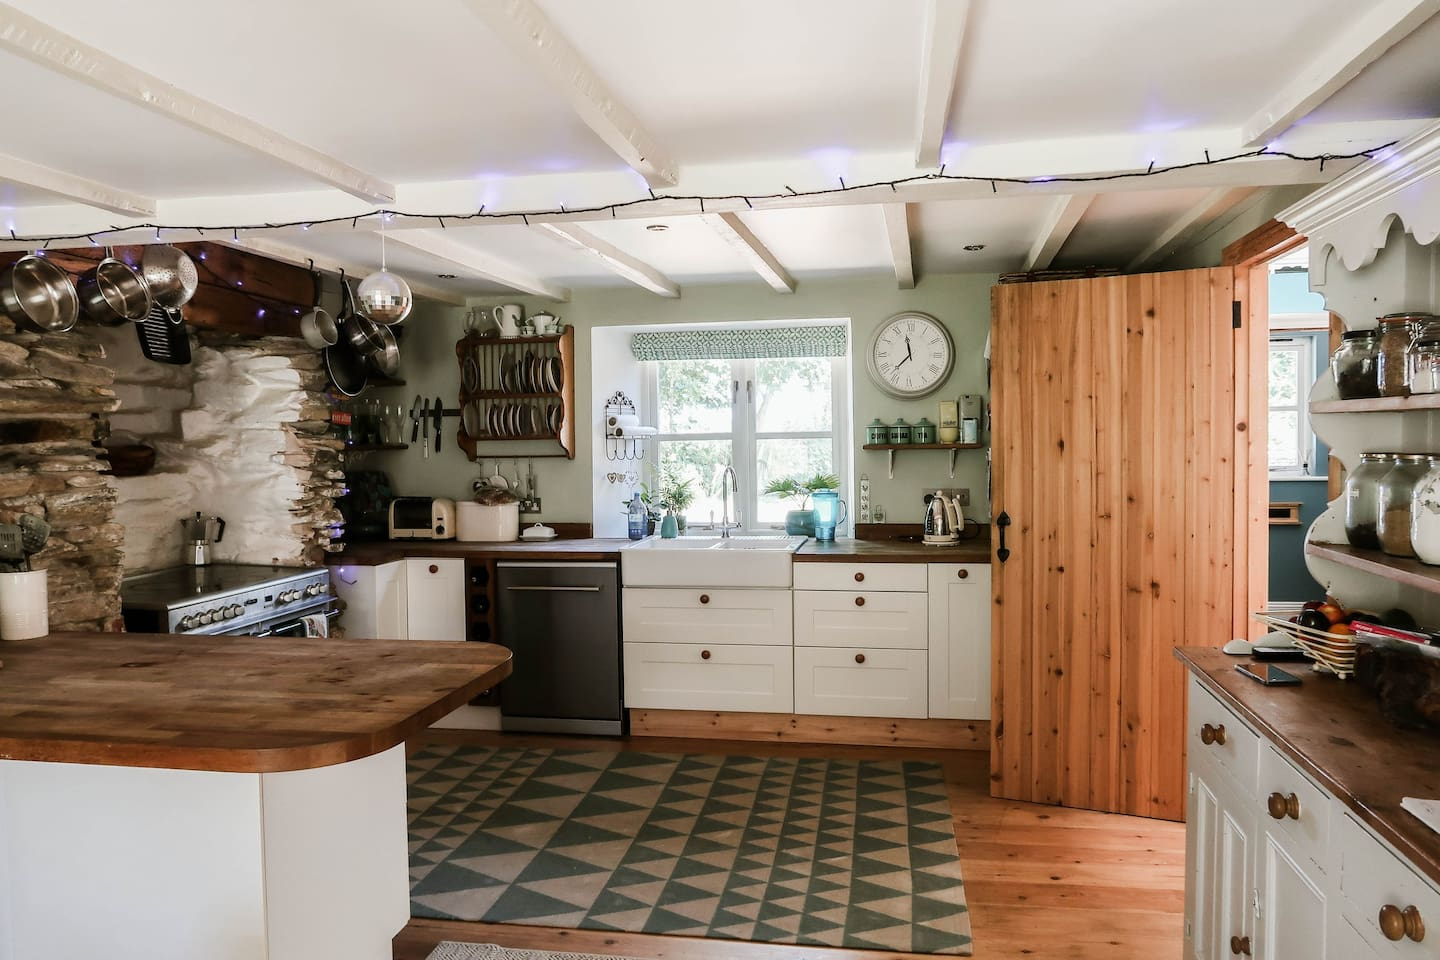 Fully fitted kitchen with breakfast bar, double farmhouse sink, range oven, dishwasher and stone pillar features.